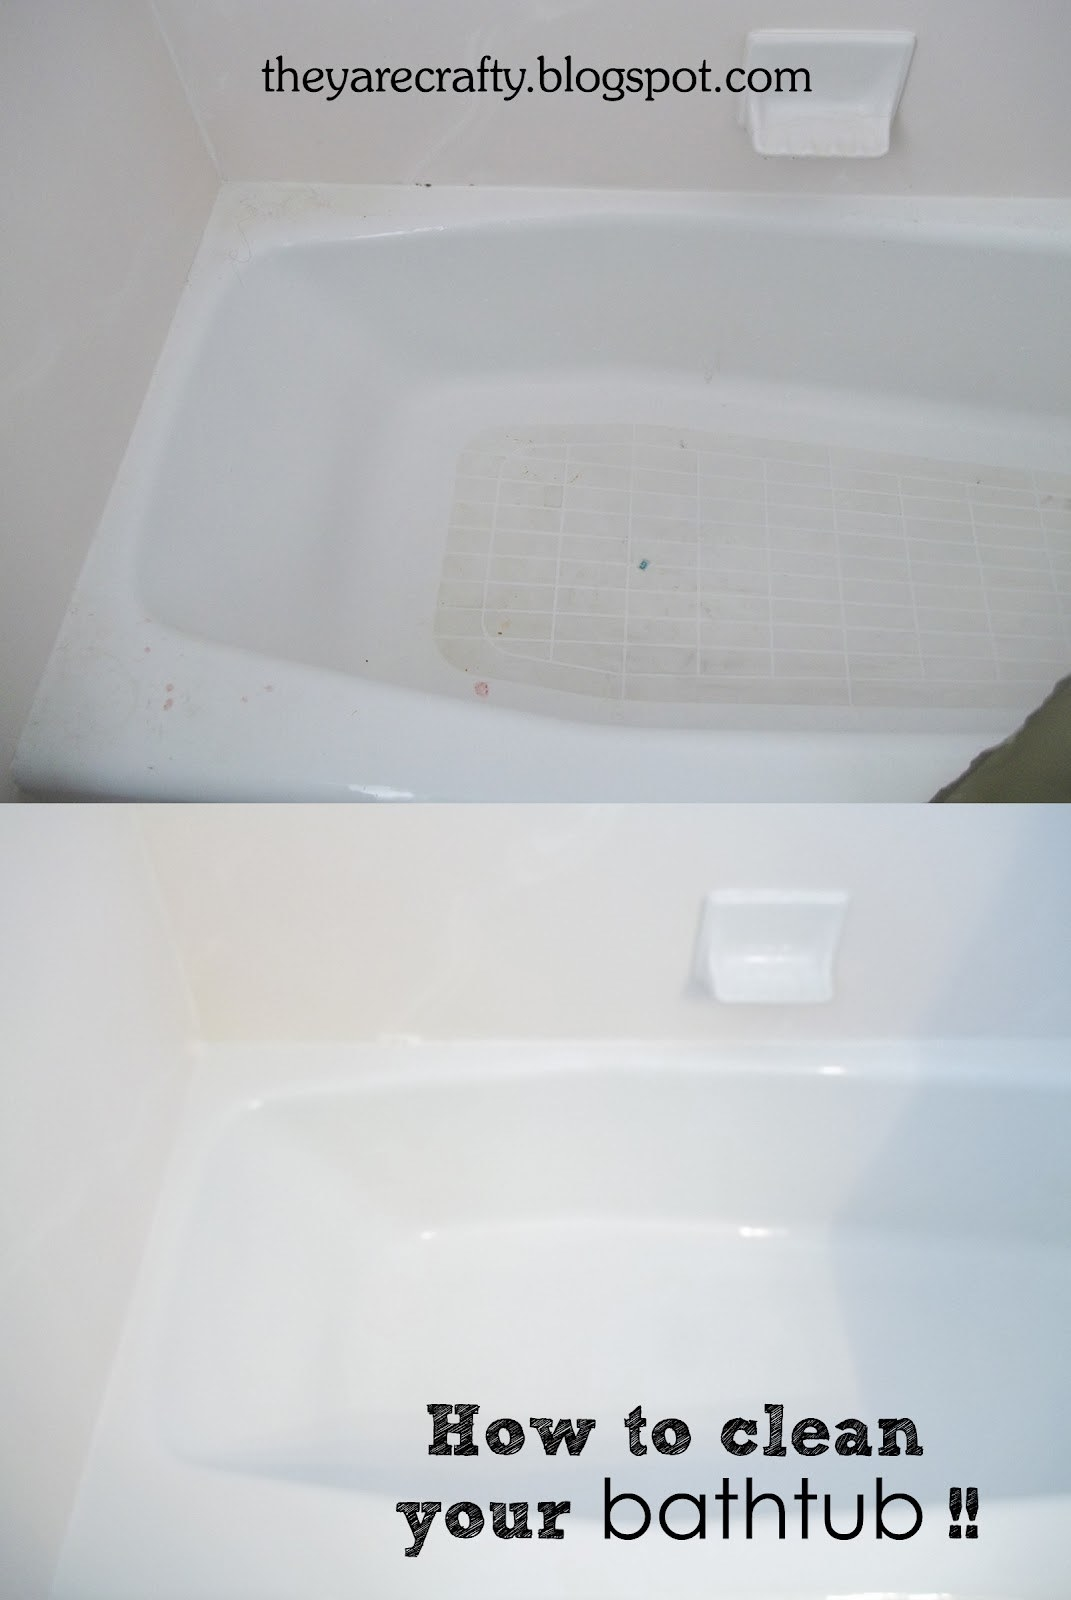 blogger's tub before, looking grey and brown with some dirt, and after, looking bright, shiny white, and clean